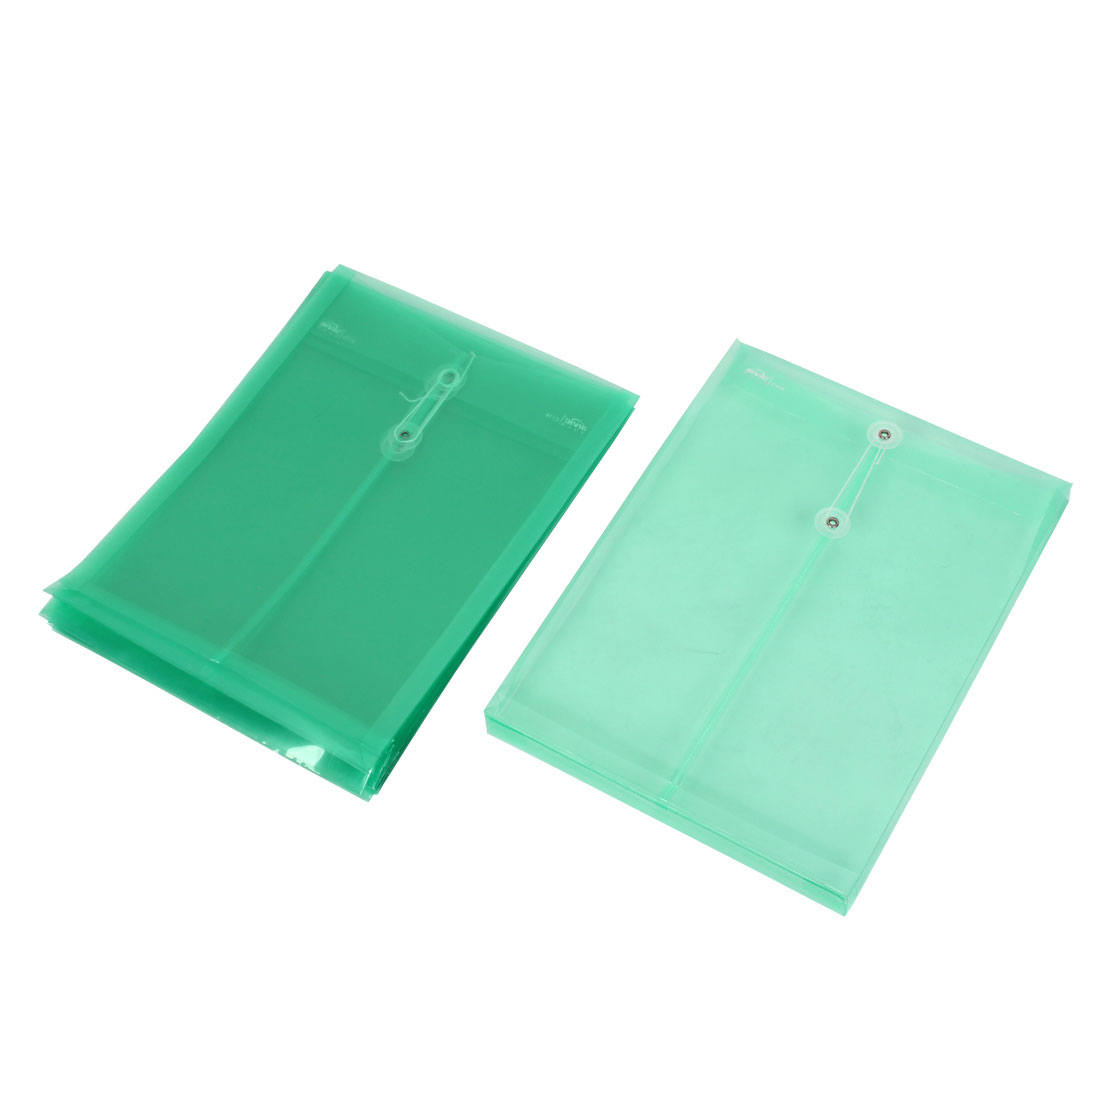 Office Stationery A4 Paper Document Clip File Bag Holder Organizer Teal 8pcs